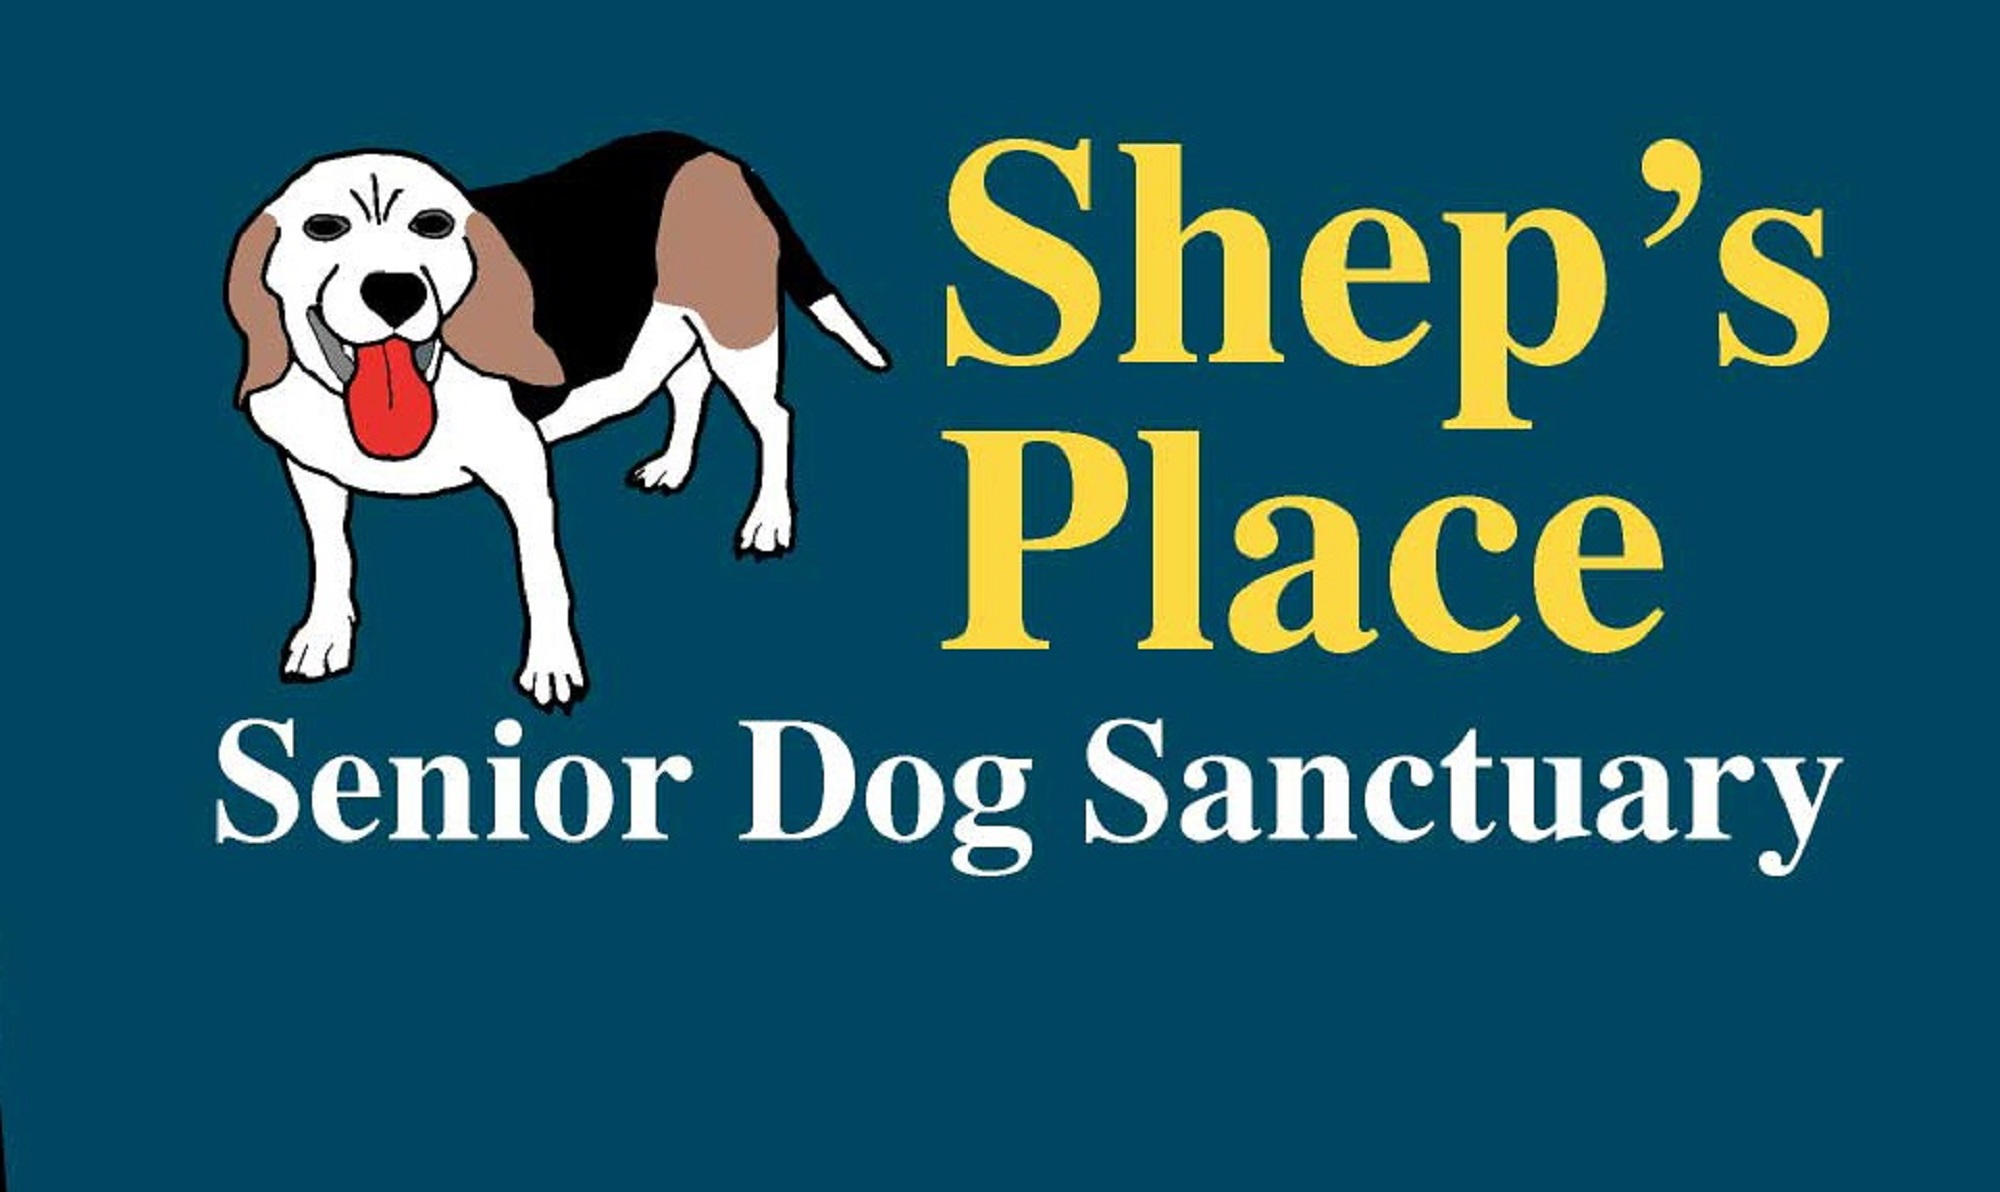 Shep's Place Senior Dog Sanctuary